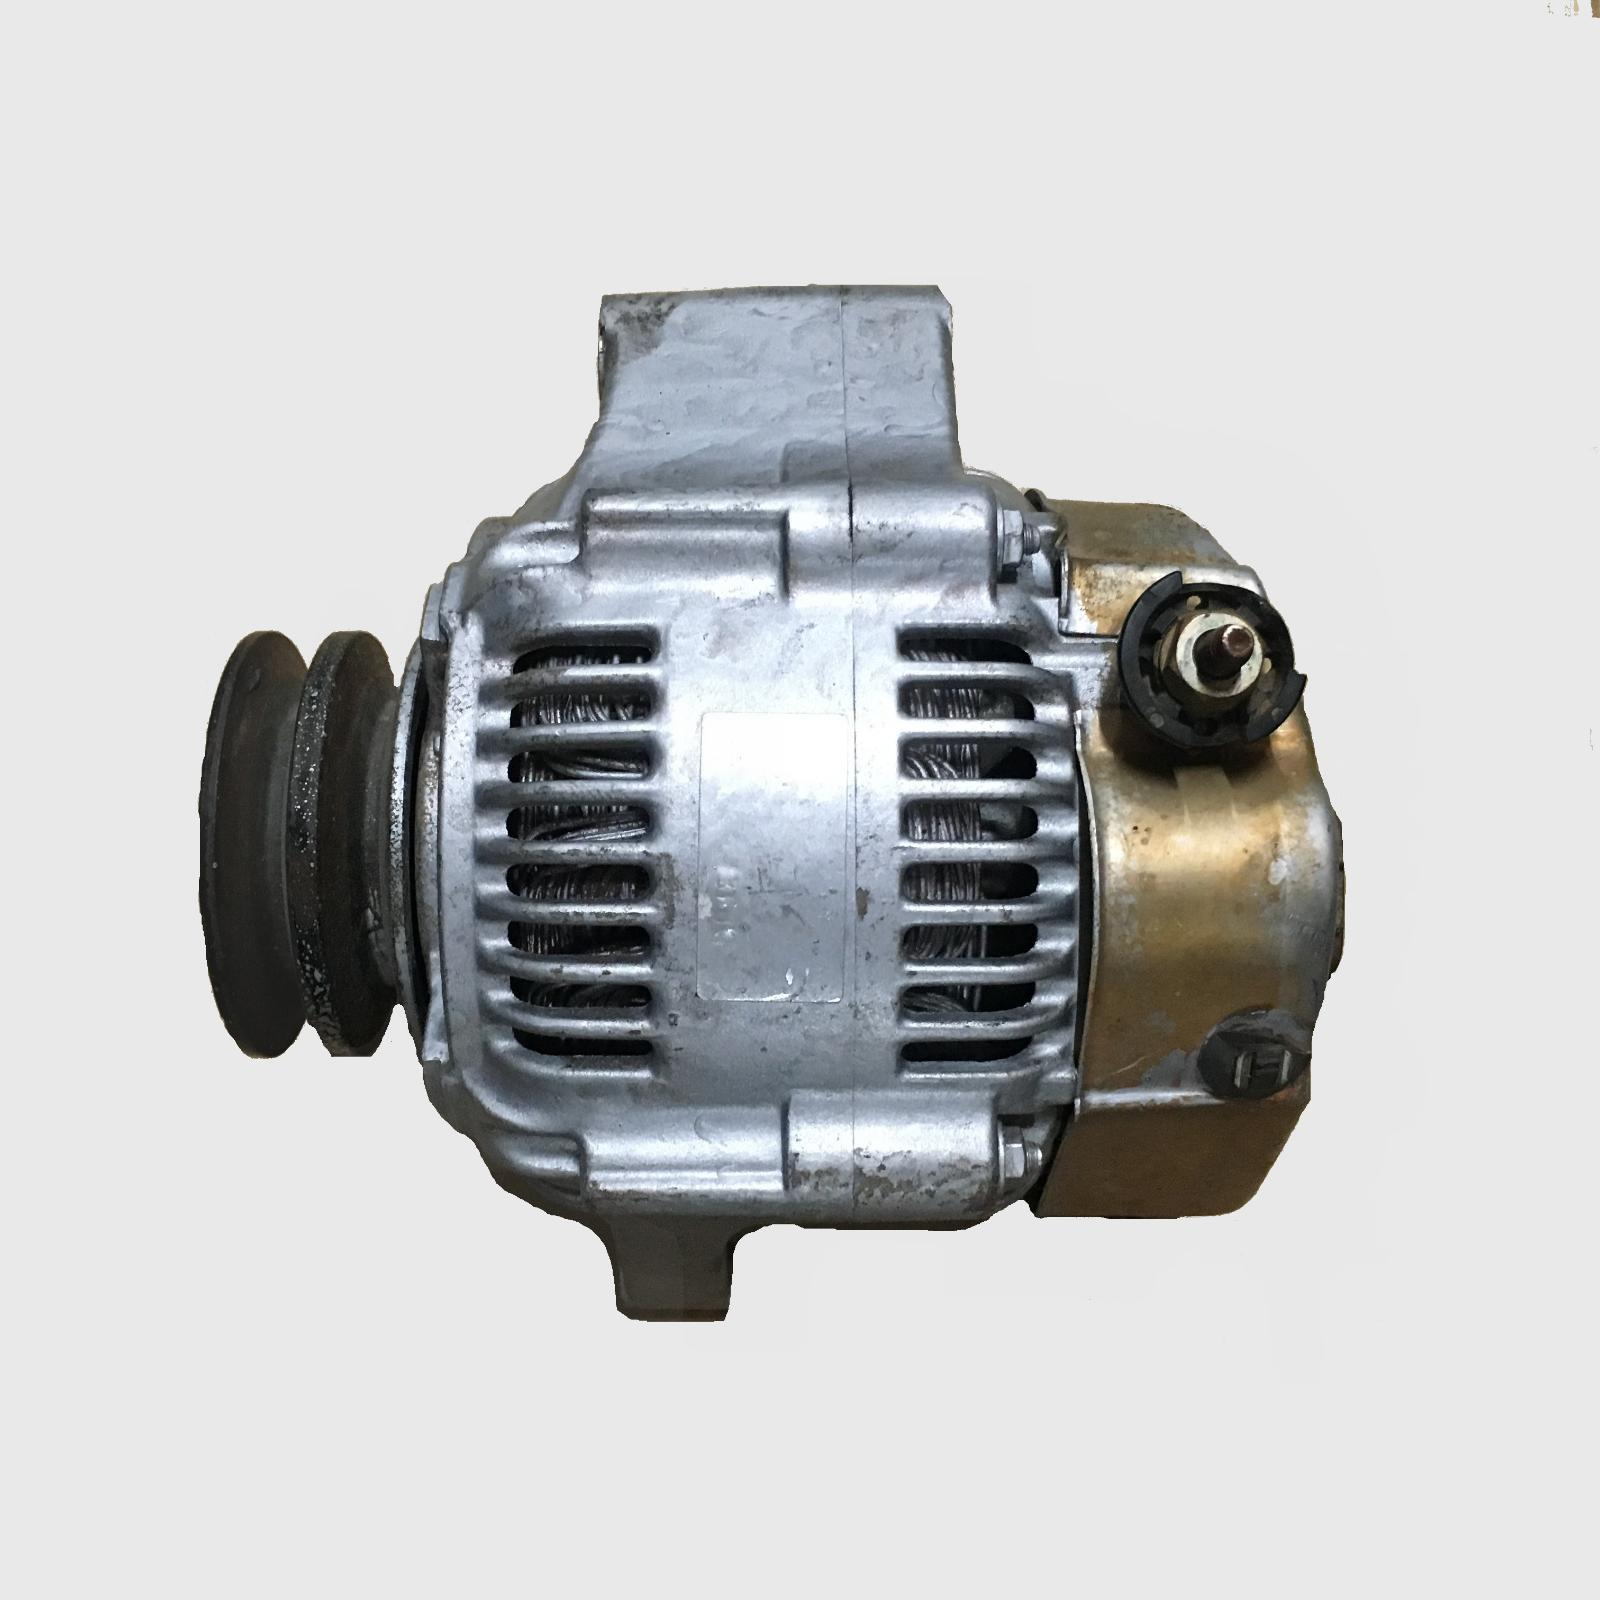 TOYOTA LANDCRUISER, Alternator, 78/80/100 SERIES, DIESEL, 4.2, 1HZ, OVAL PLUG, 05/90-10/07